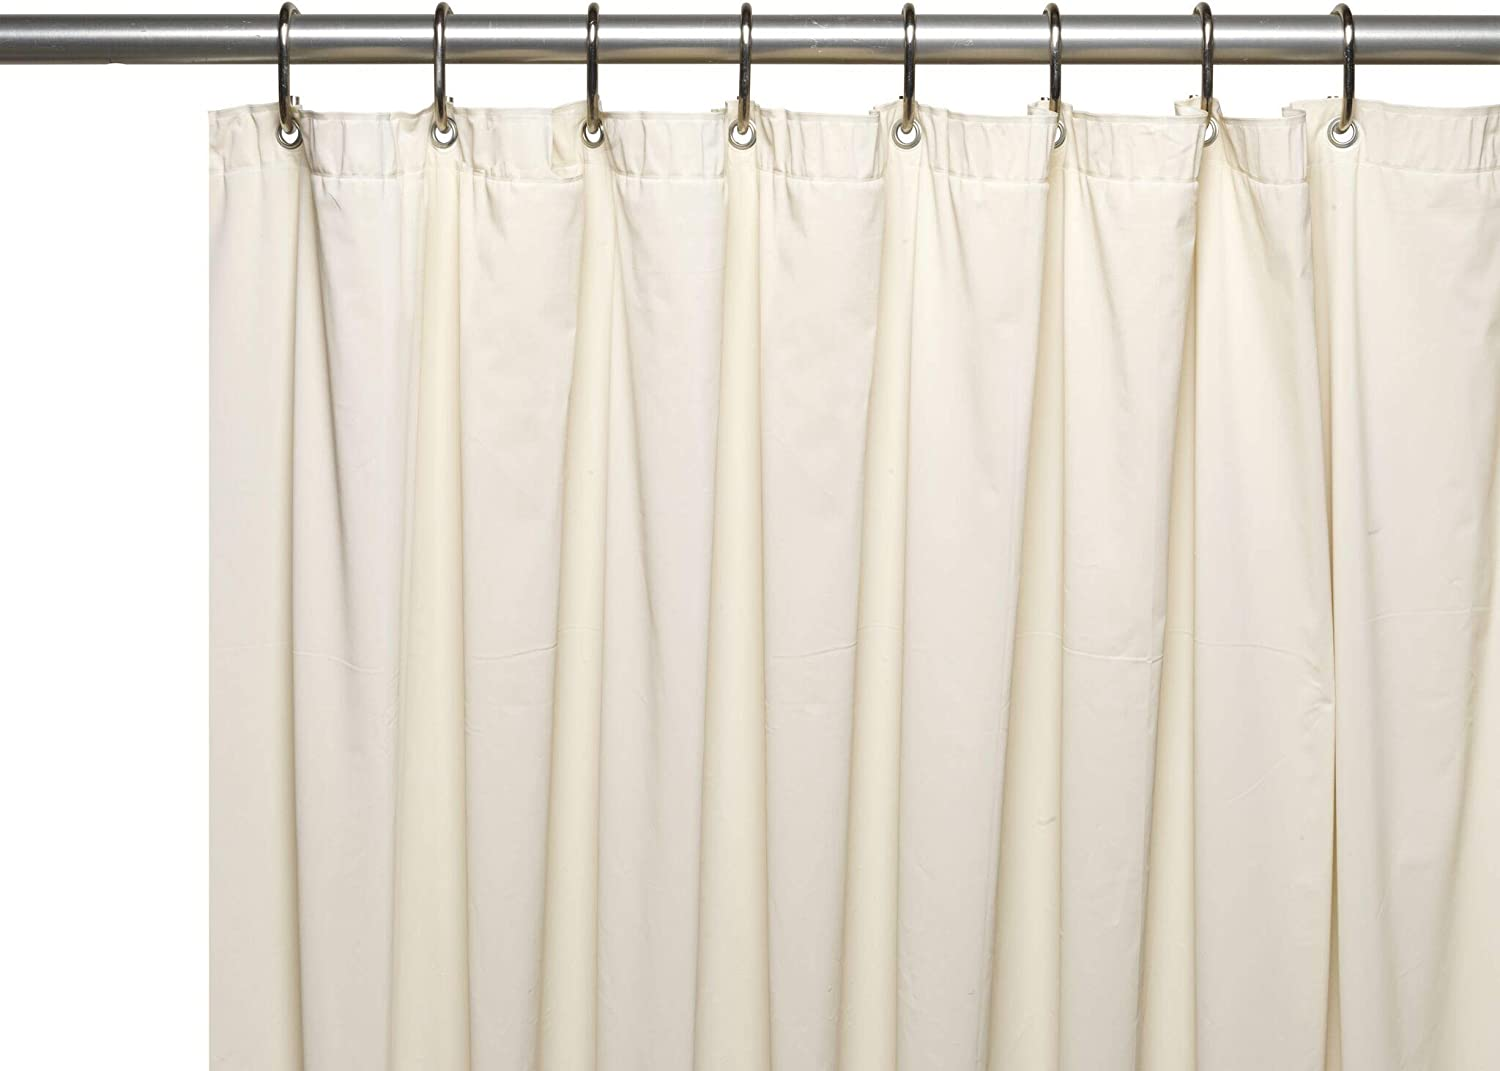 Hotel Collection Heavy Duty Mold & Mildew Resistant Premium PEVA Shower Curtain Liner with Rust Proof Metal Grommets - Assorted Colors (Ivory/Beige)